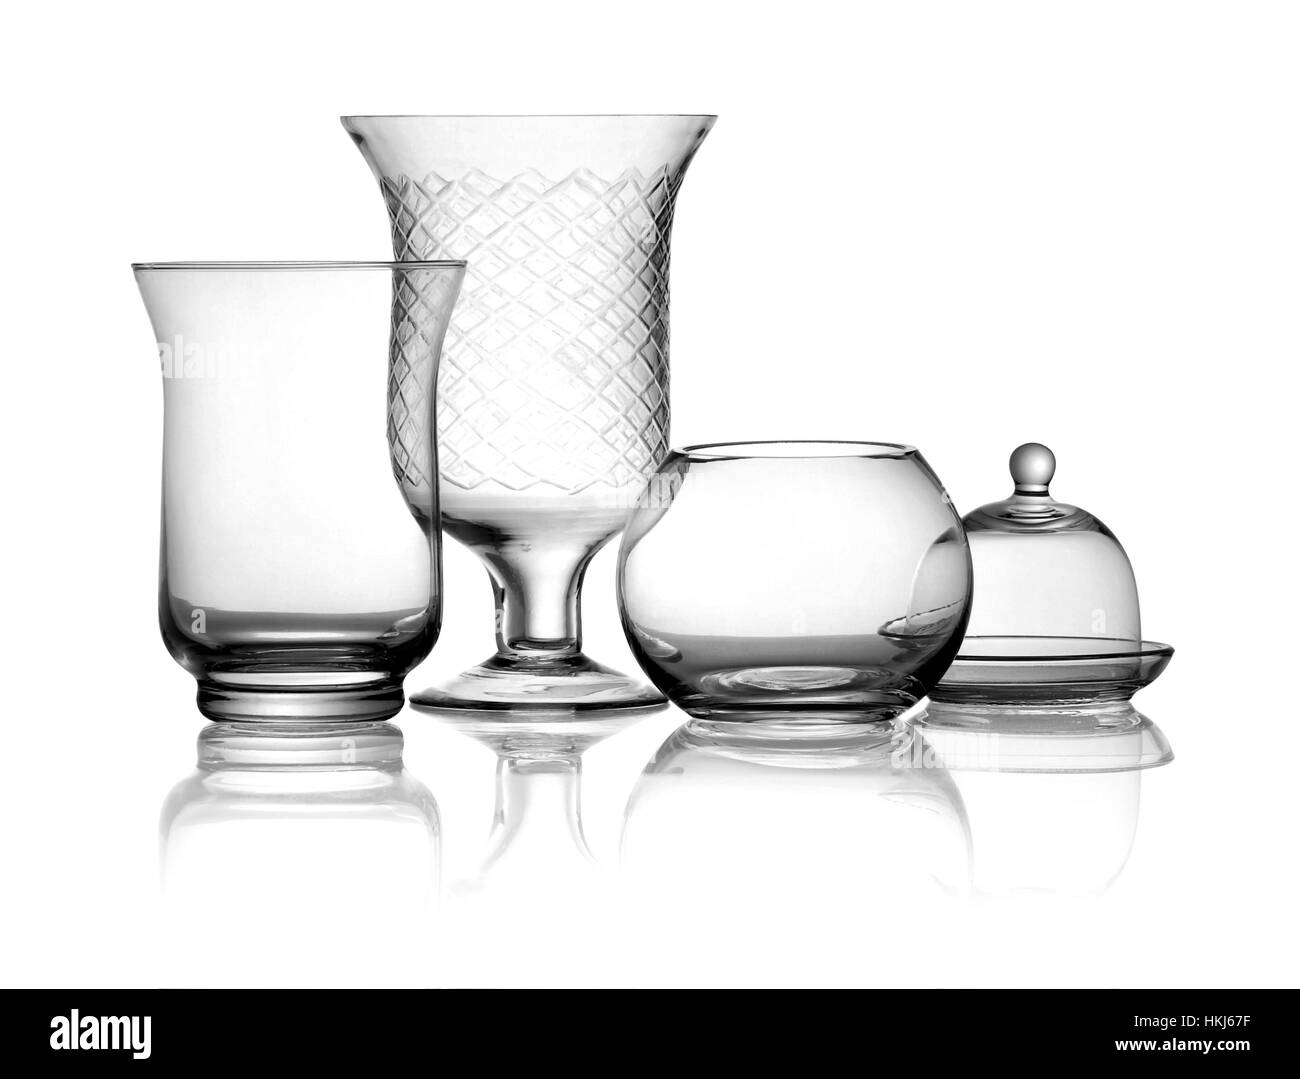 Front view of transparent glass jars and vases utensil, with reflection isolated on white background - Stock Image